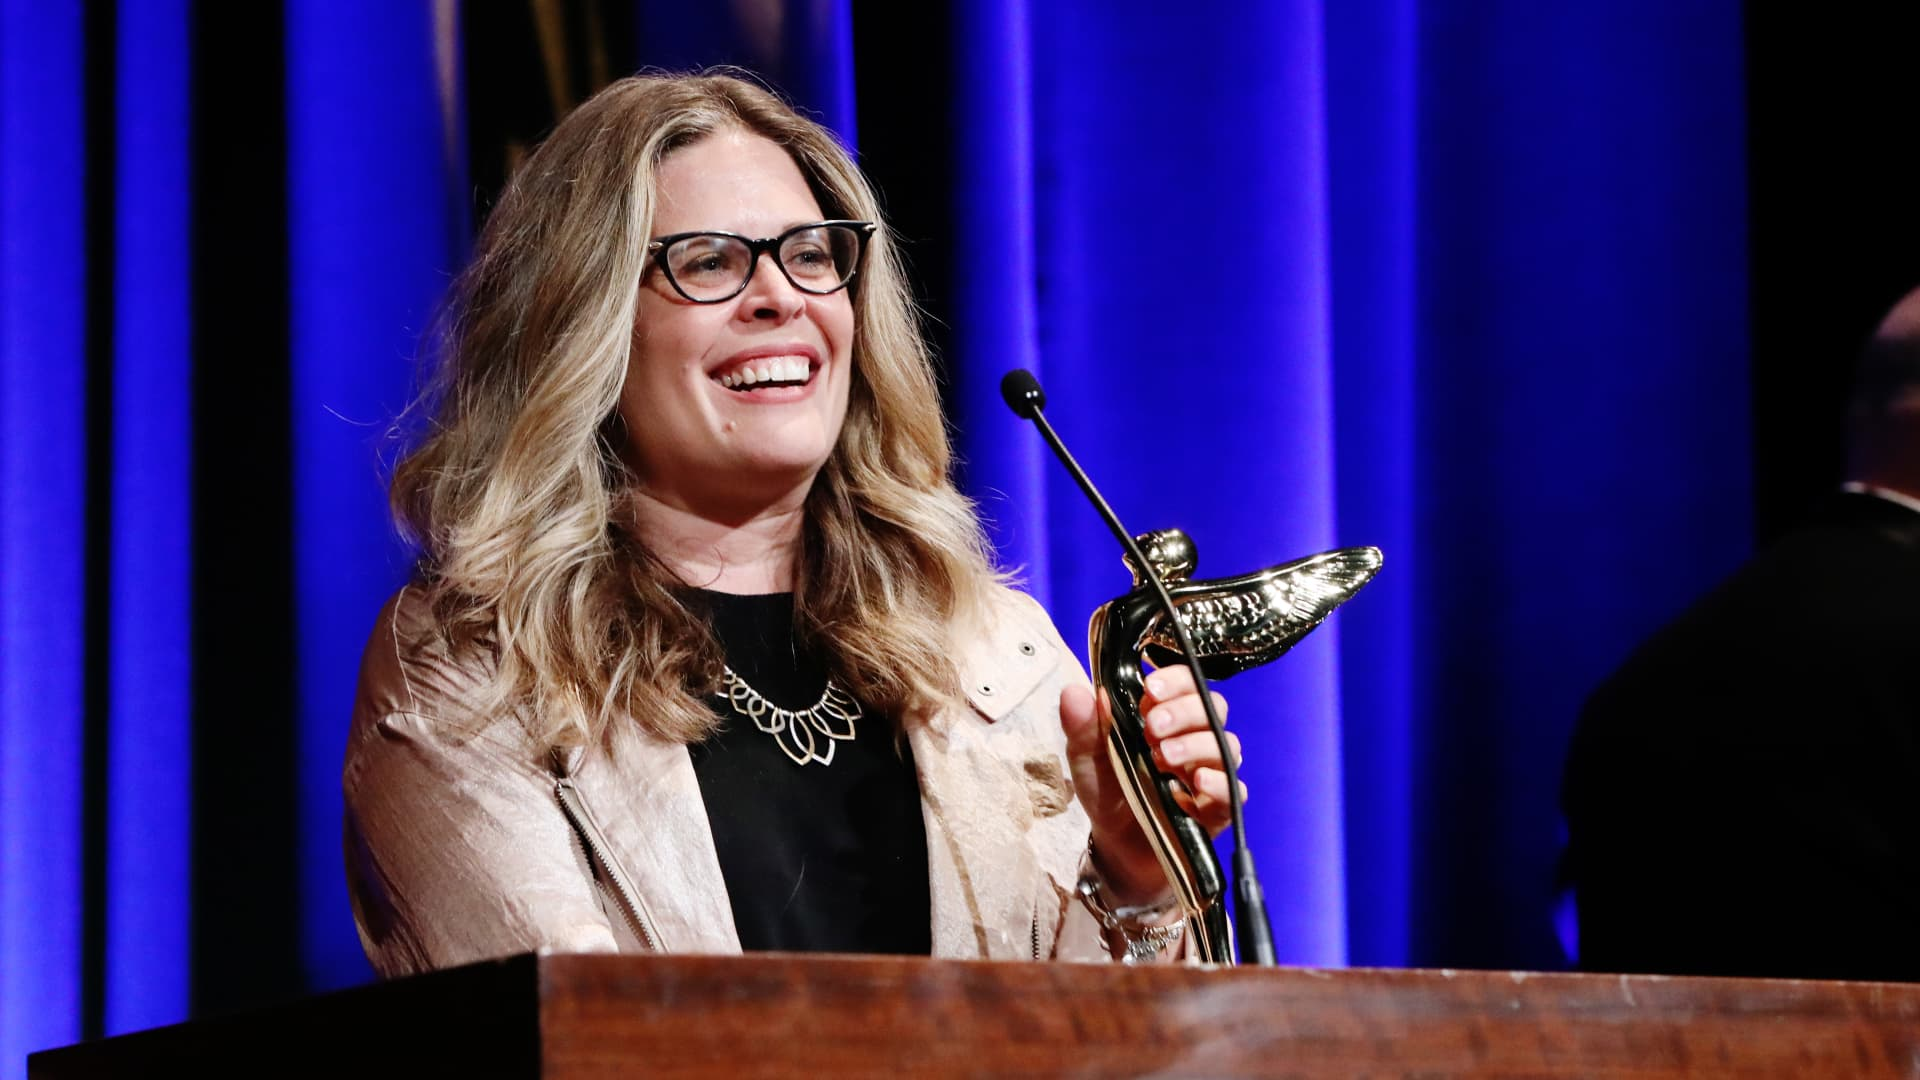 Walt Disney Animation Studios CCO Jennifer Lee accept the 'Best Immersive Feature Film - Animated' award for Frozen 2 onstage during The Advanced Imaging Society's 11th Annual Lumiere Awards at Steven J. Ross Theatre on the Warner Bros. Lot on January 22, 2020 in Burbank, California.